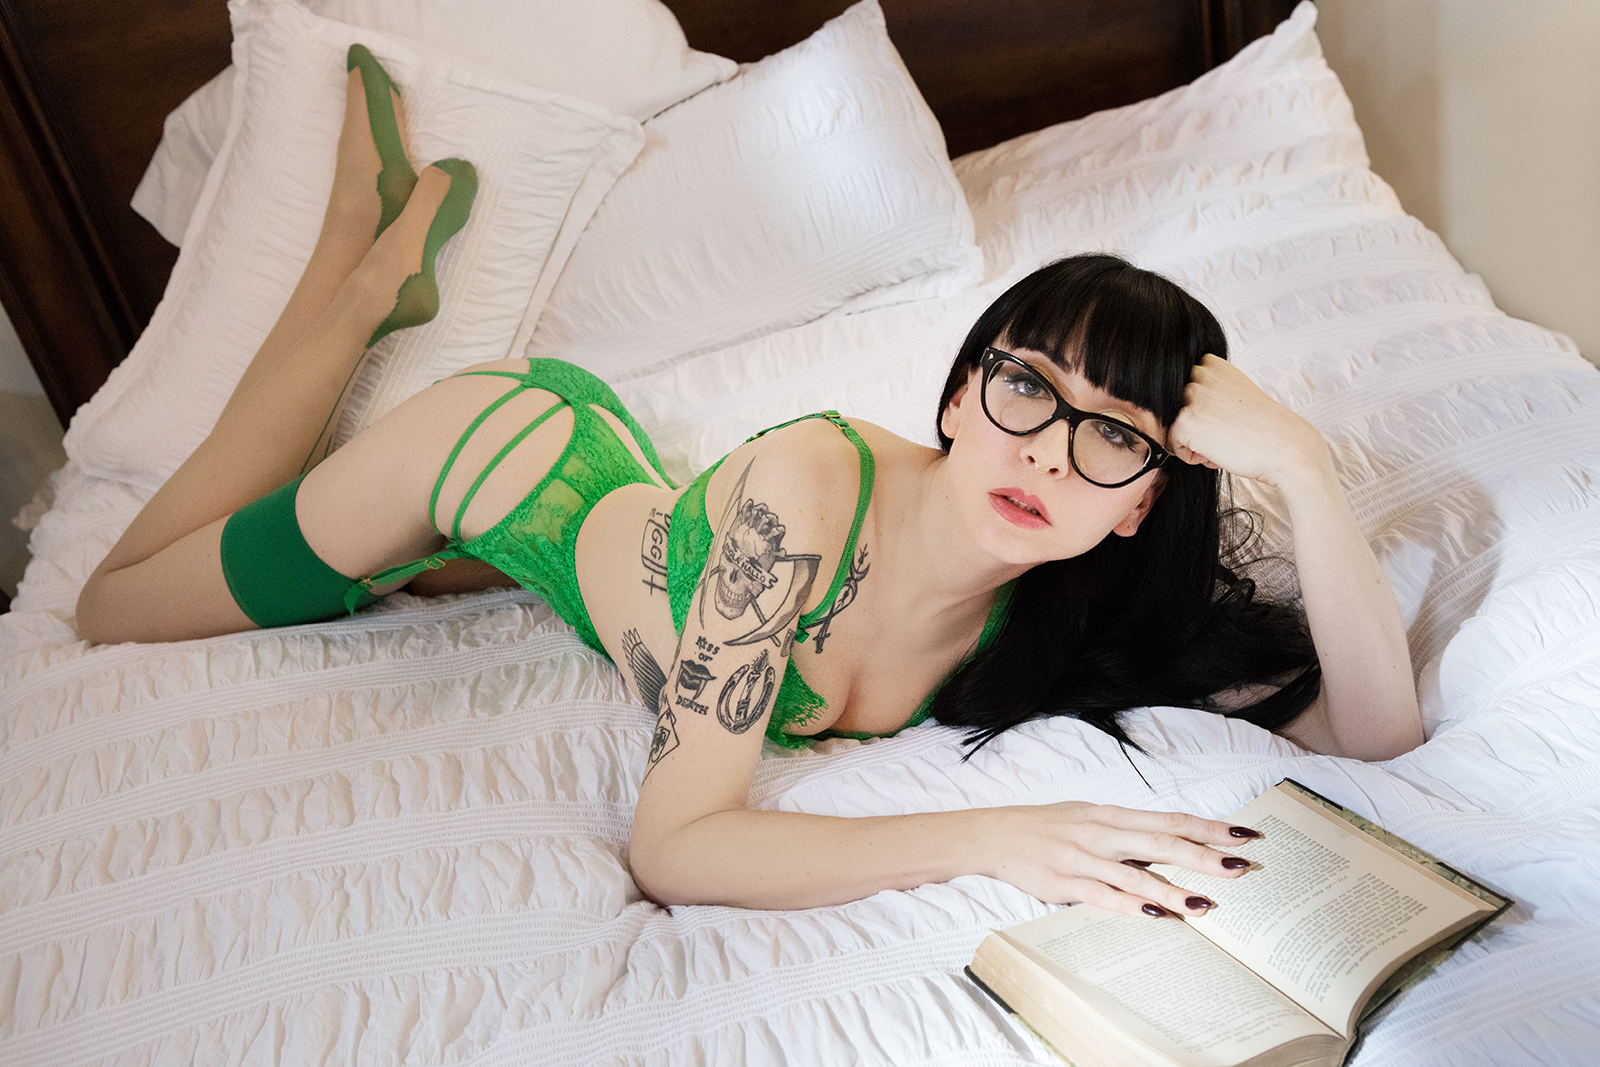 Mistress_Ramona_Ryder_Professional_Pervert_Muse_Escort_Kinky_Travel_Companion_Educated_Literature_University_College_Book_Nerd_Reader_Writer_Blog_Intellectual_Glasses_Sweetheart_Girl_Next_Door_Suicide_Girl_Tattoos_stockings_fetish%0A.jpg